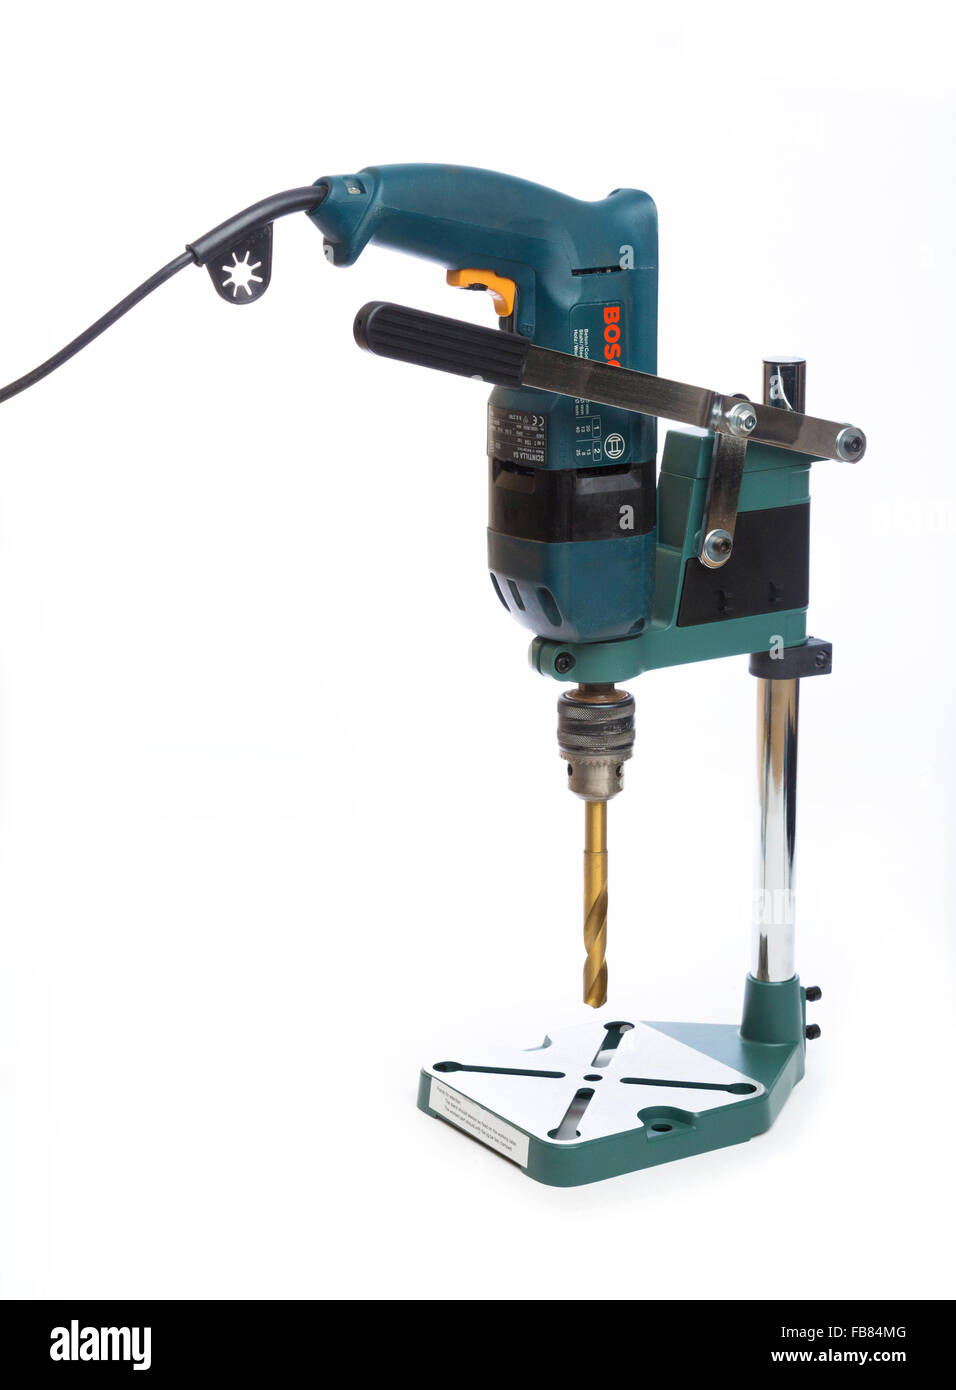 portable drill stand - Stock Image